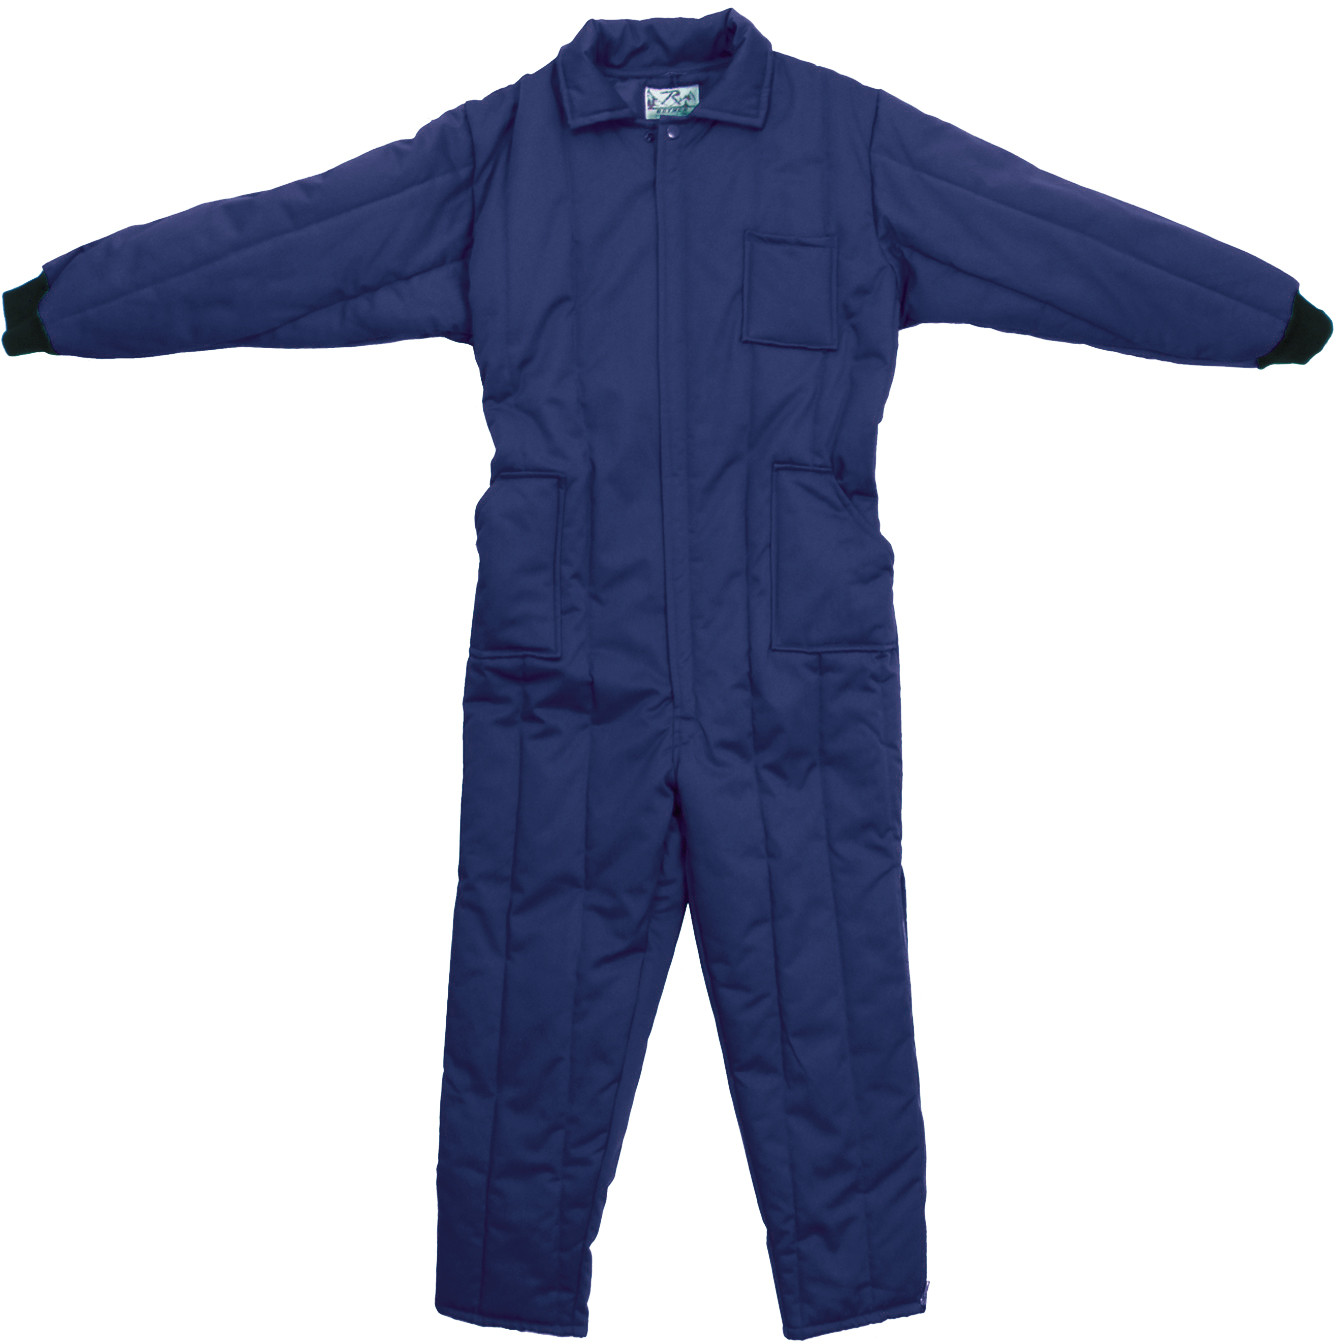 Navy Blue Cold Weather Insulated Coverall Jumpsuit 74477bcc39a